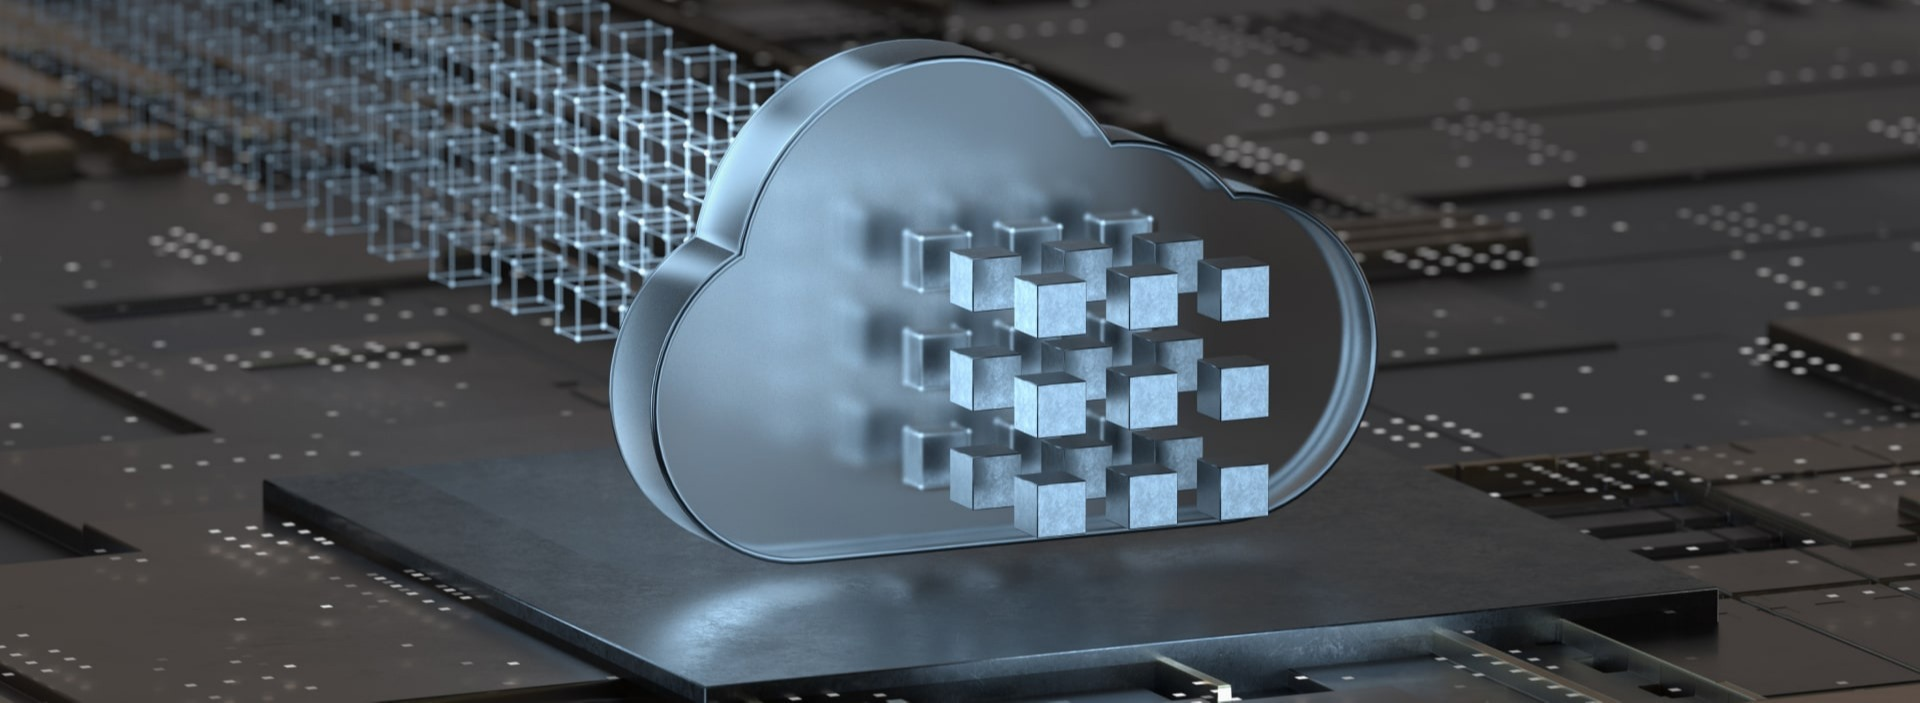 Hybrid cloud: How to make the most of it